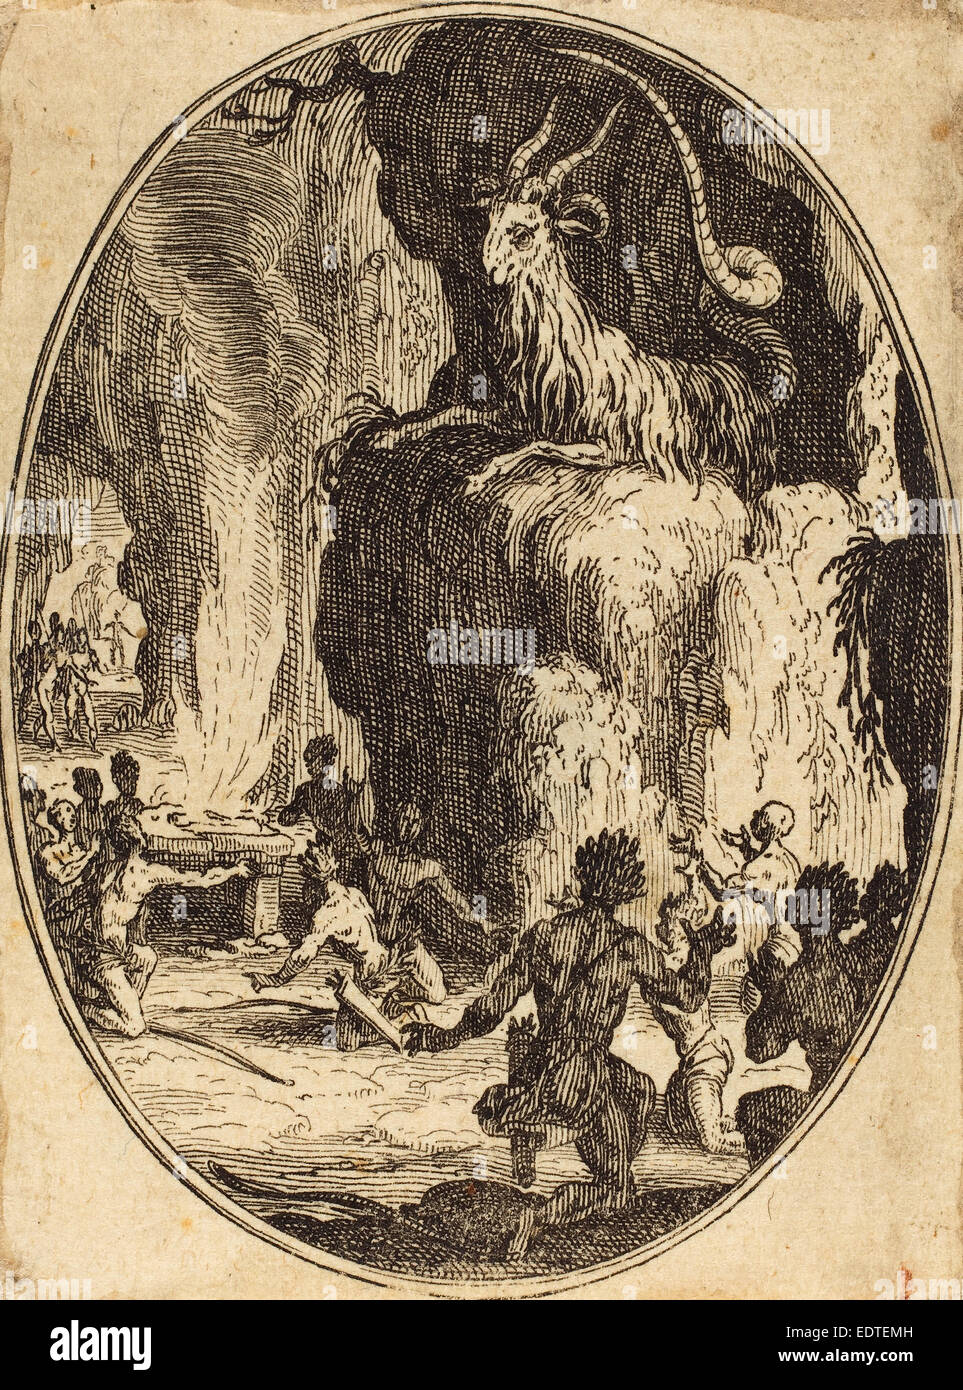 Jacques Callot (French, 1592 - 1635), The Cult of the Demon, probably 1627,  etching